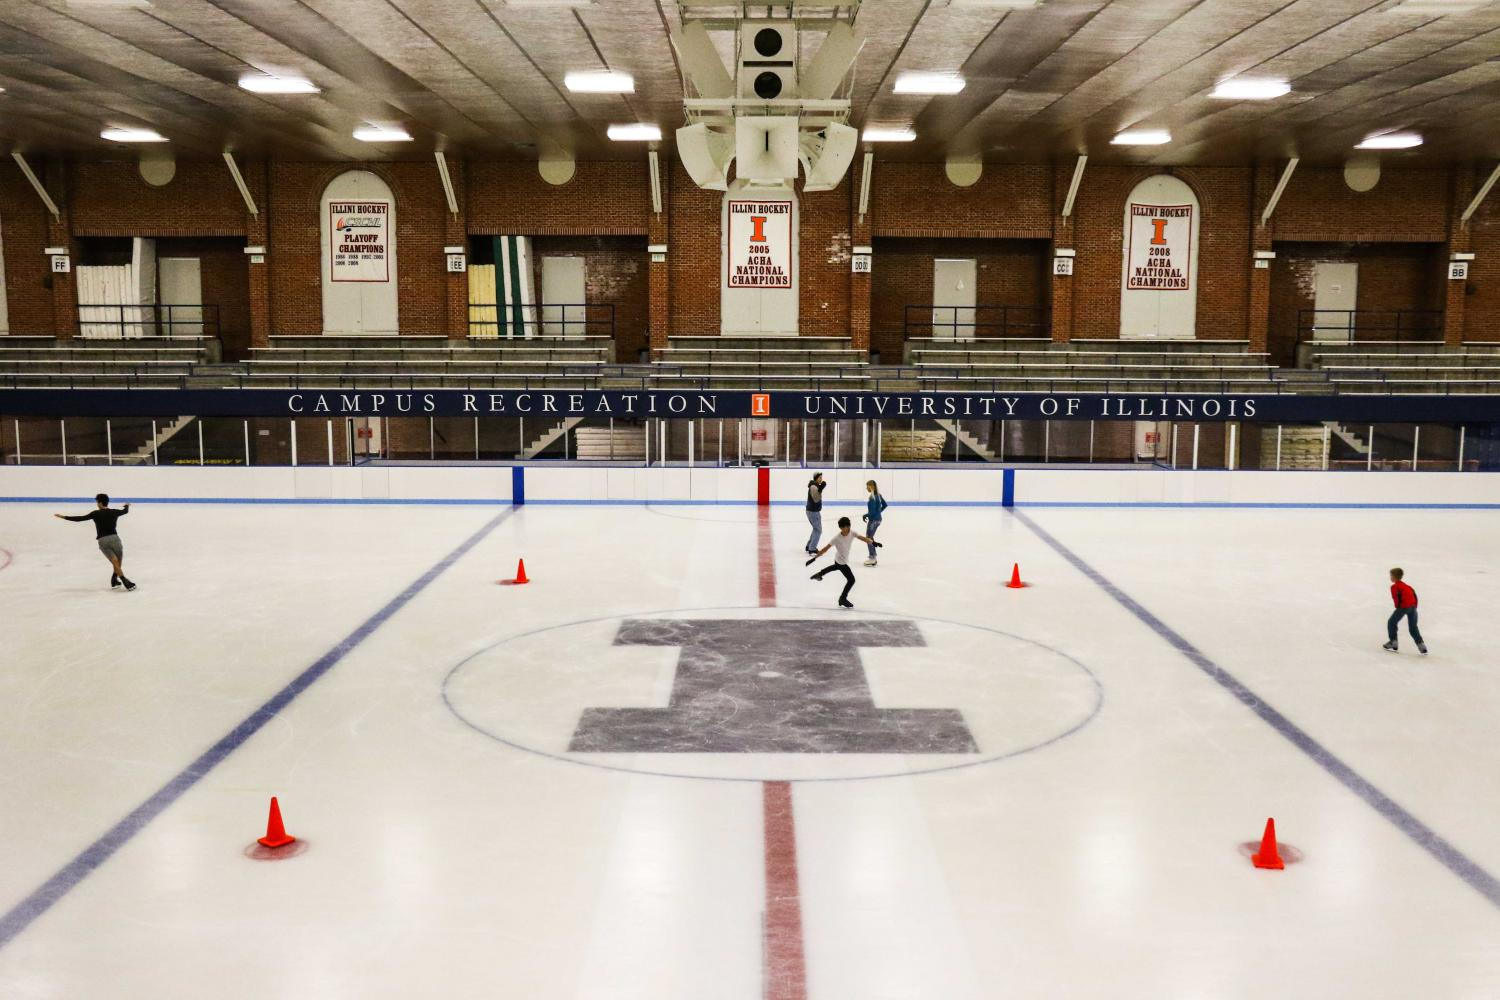 Ice Girls is a new RSO created by Amanda Wang, senior in ACES, to help promote the Division 1 hockey team at the University.